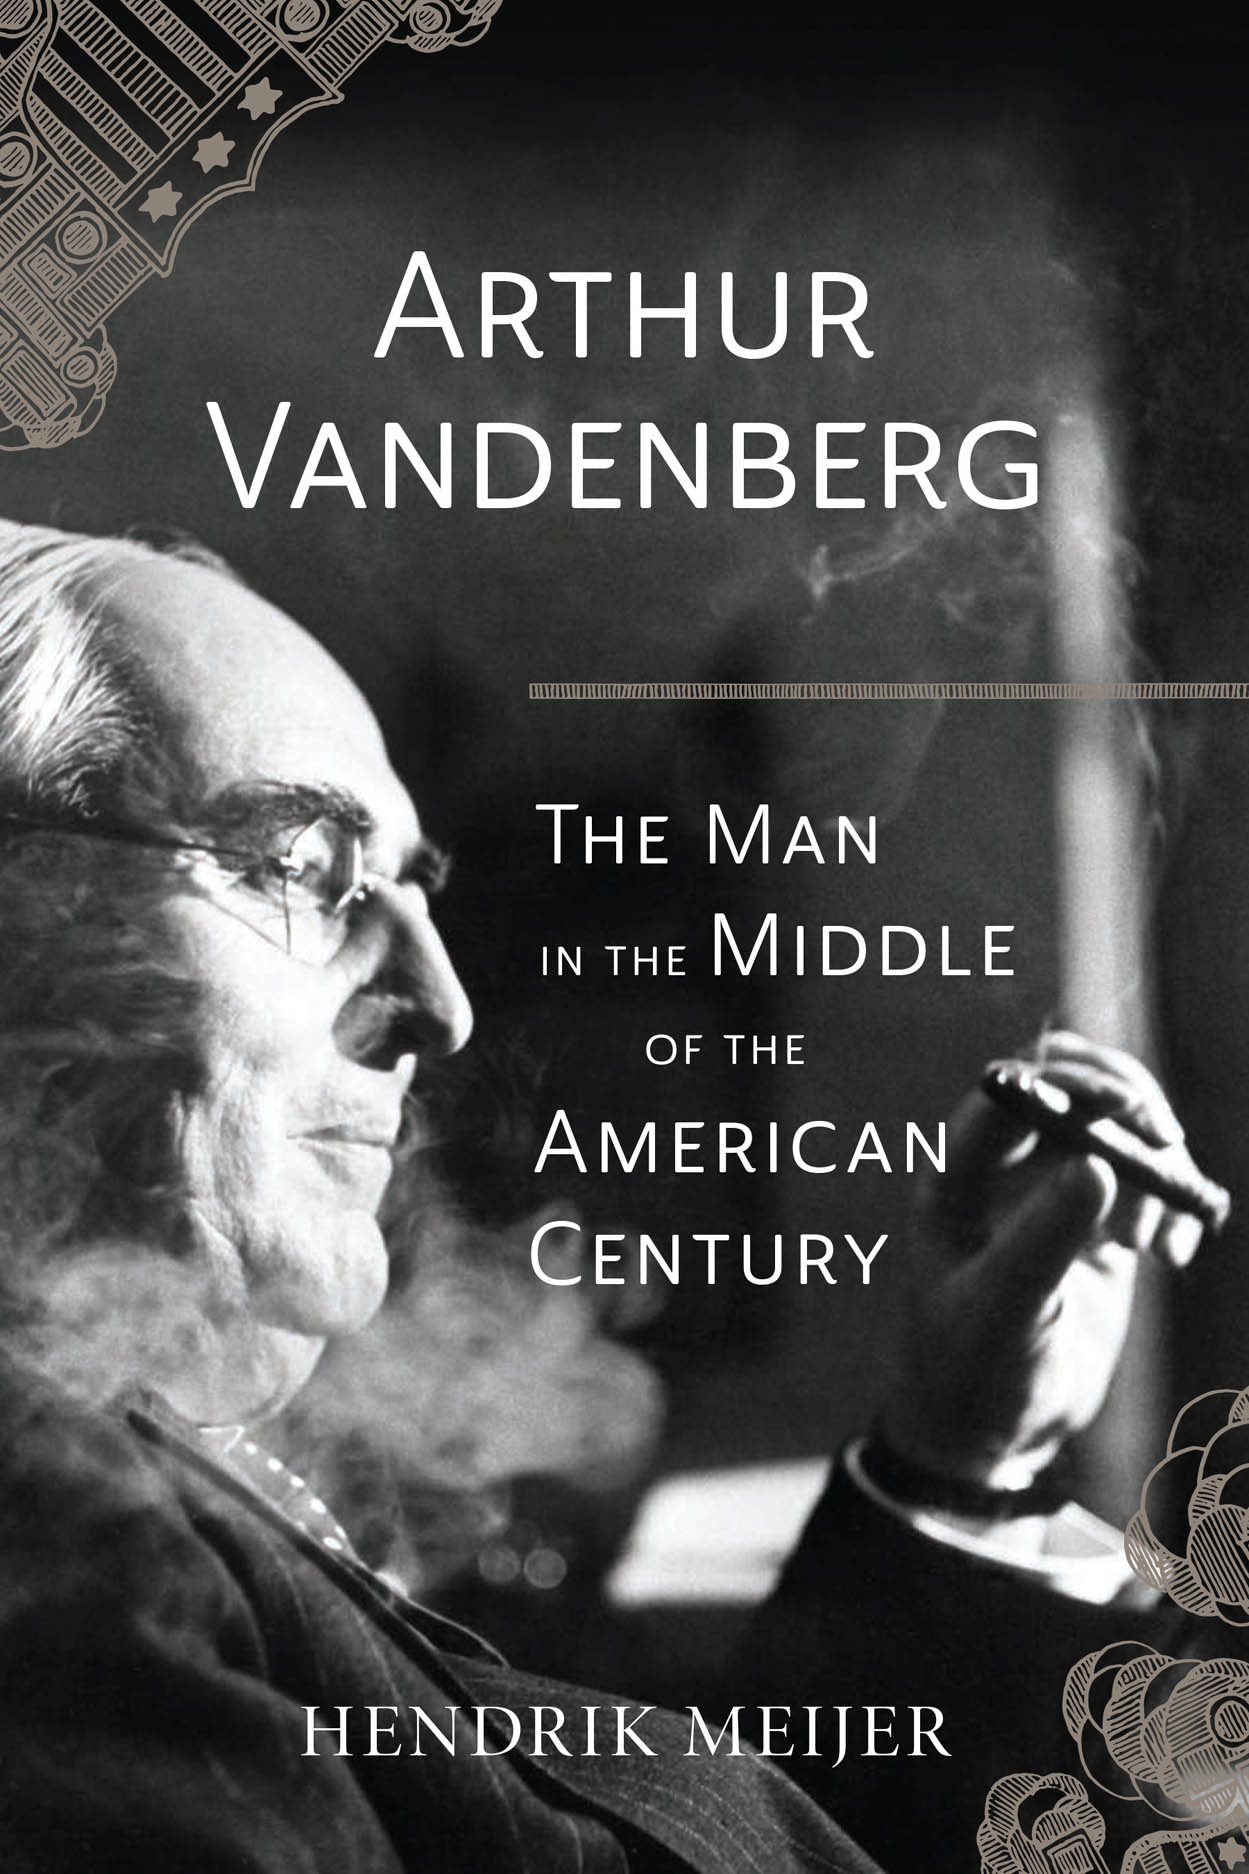 Arthur Vandenberg: The Man in the Middle of the American Century